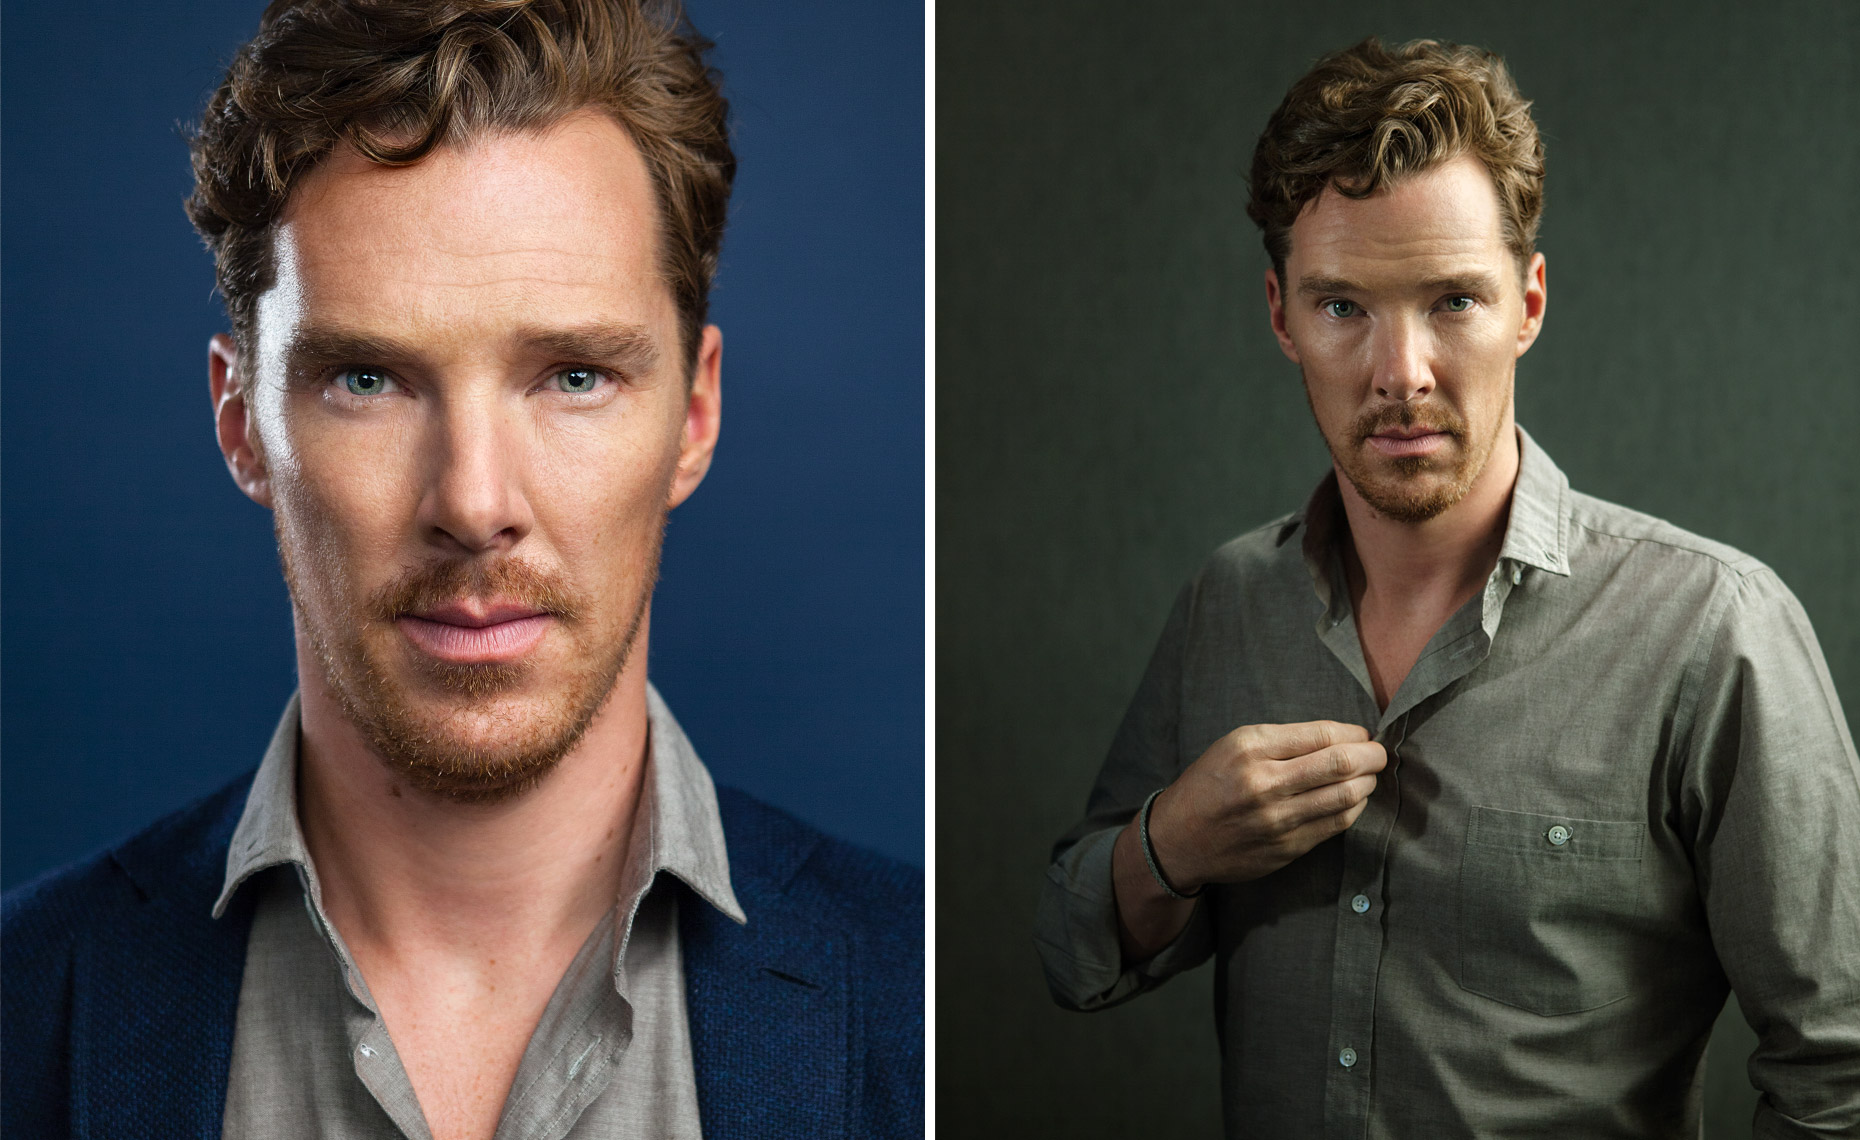 Benedict Cumberbatch © Dale May